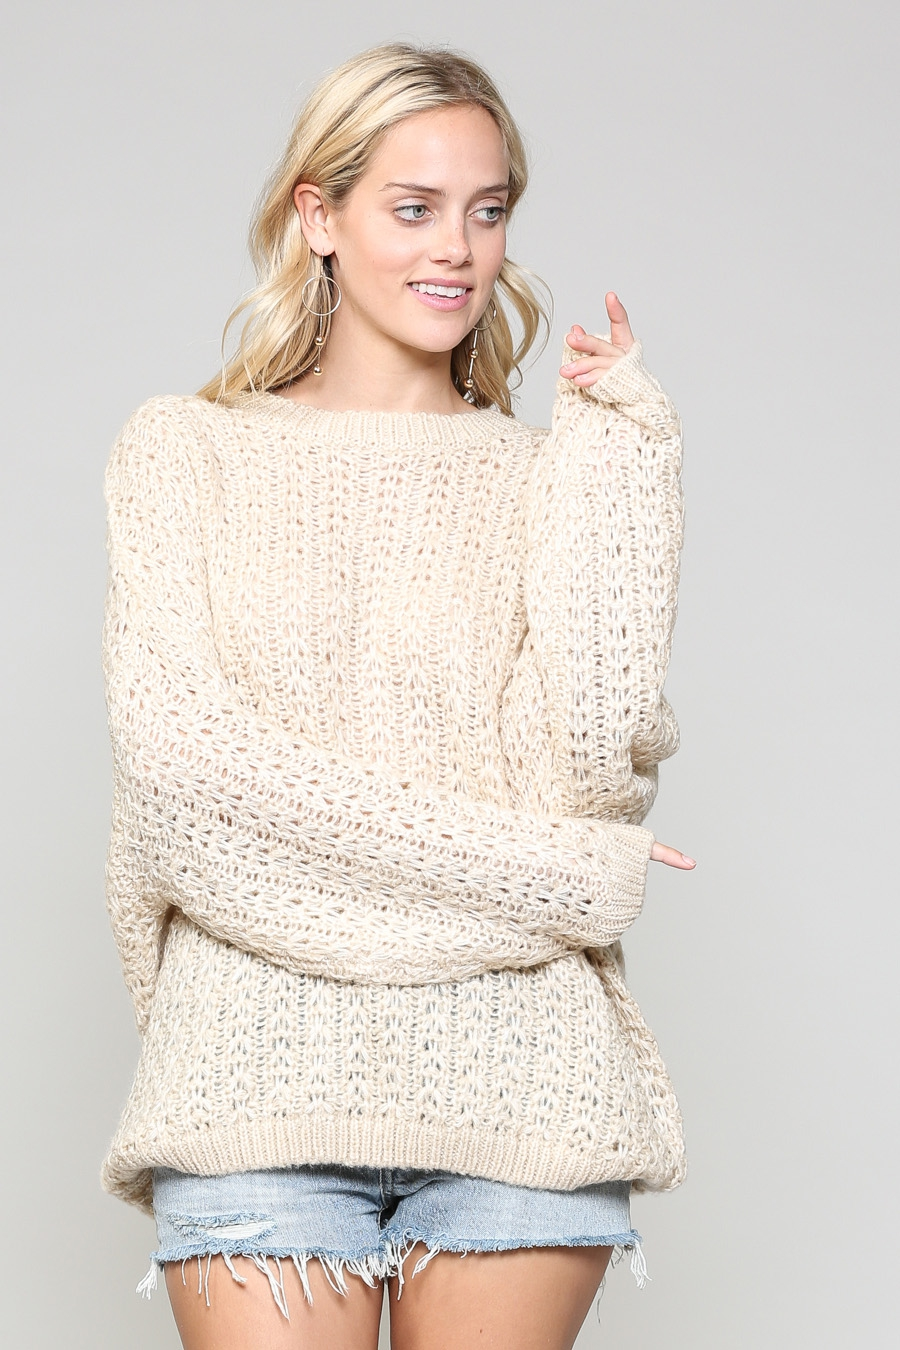 TEXTURED OVERSIZED CHRCHET SWEATER - orangeshine.com